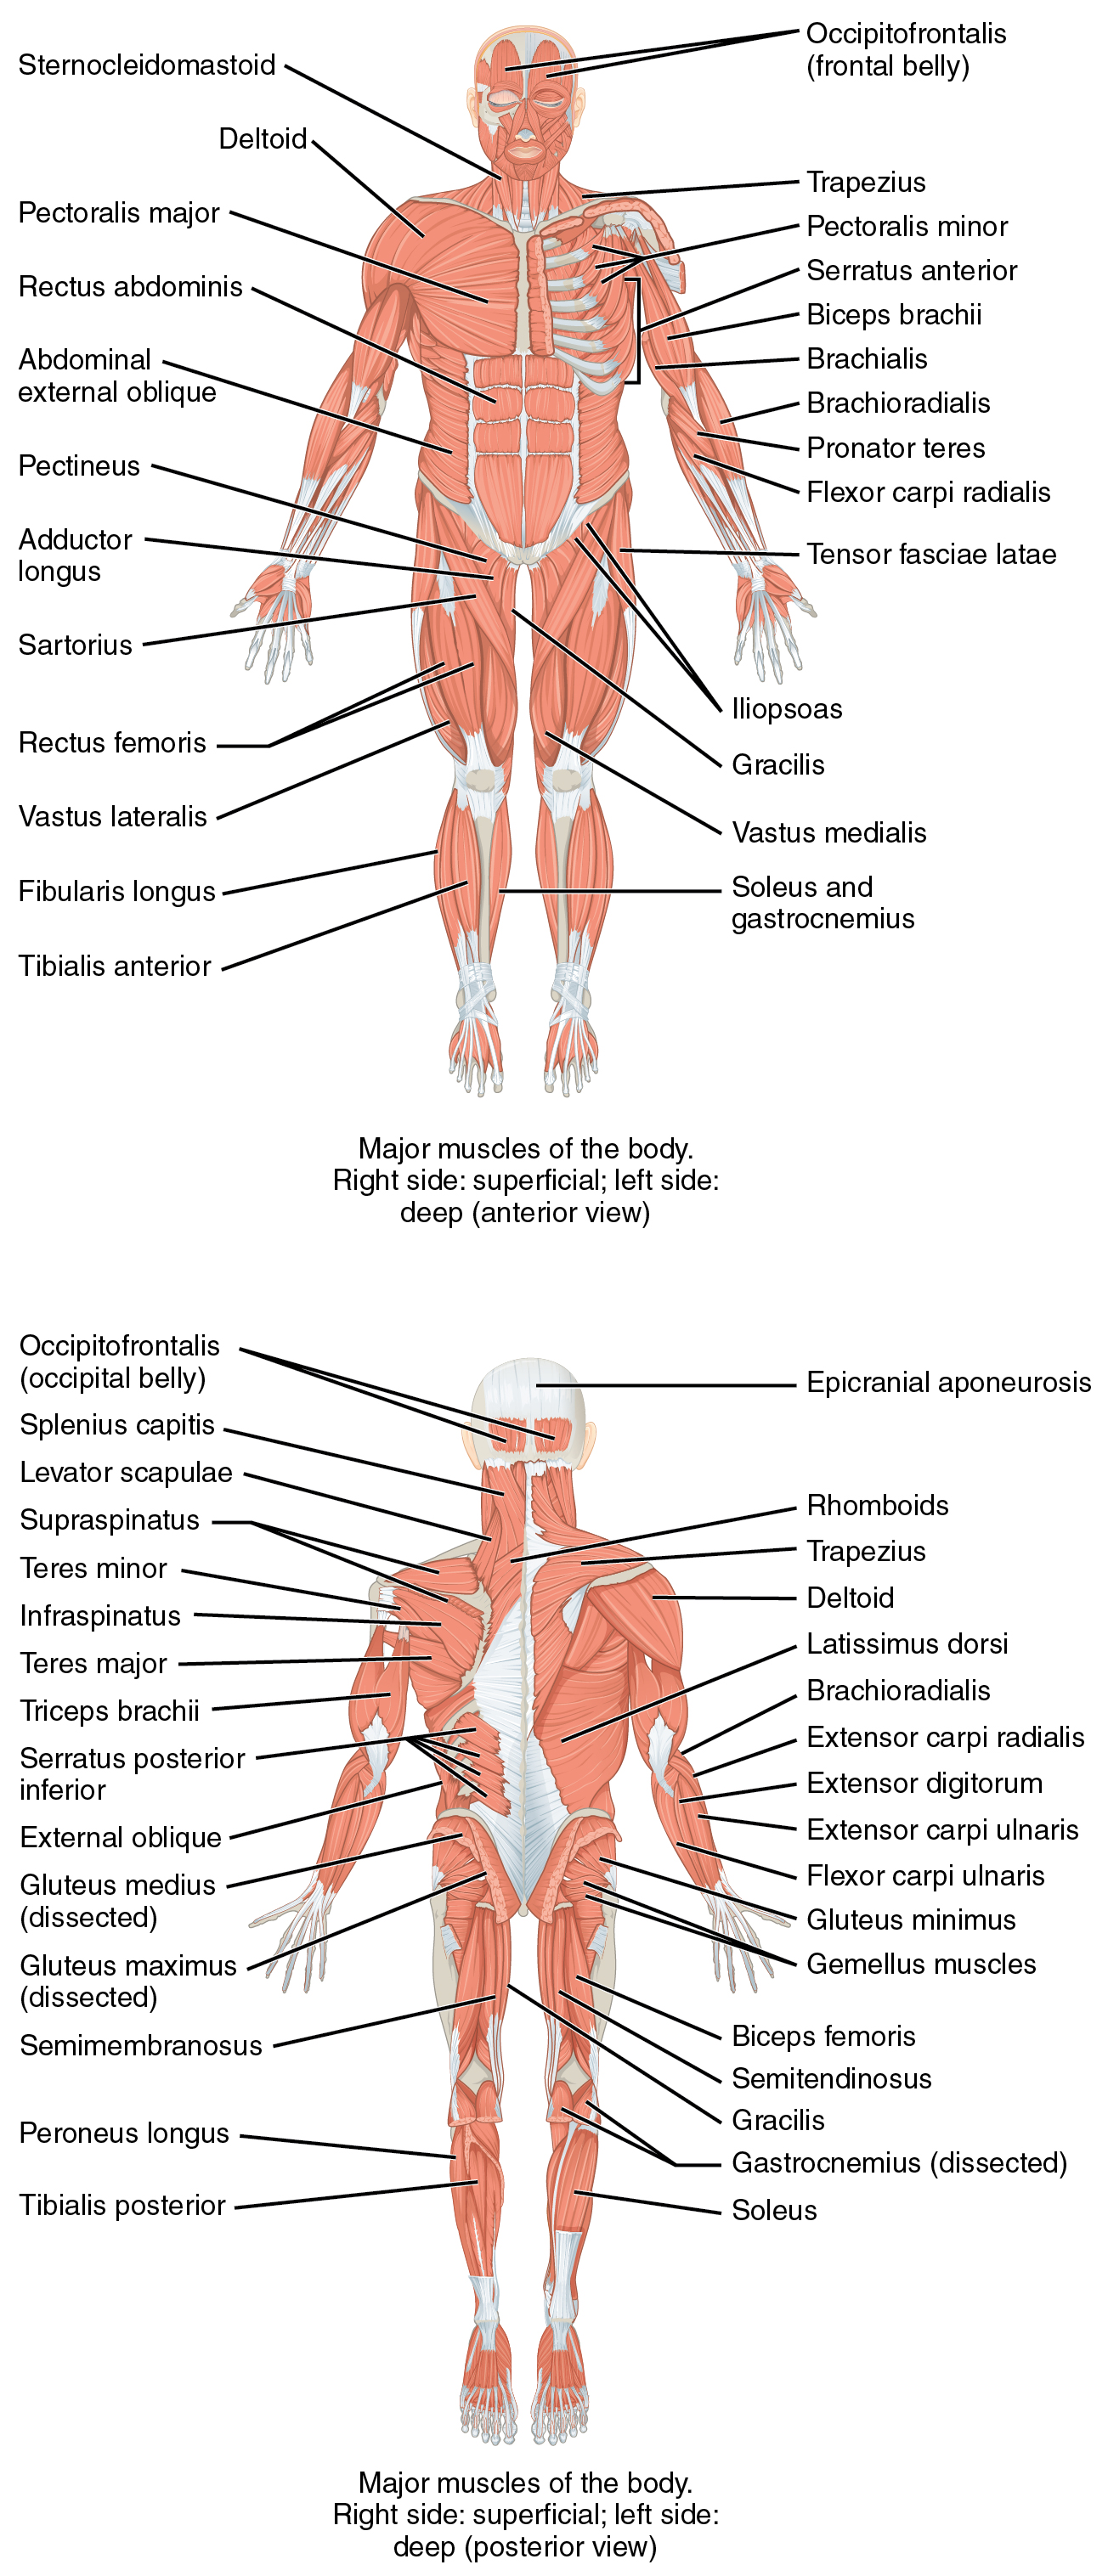 The top panel shows the anterior view of the human body with the major muscles labeled. The bottom panel shows the posterior view of the human body with the major muscles labeled.